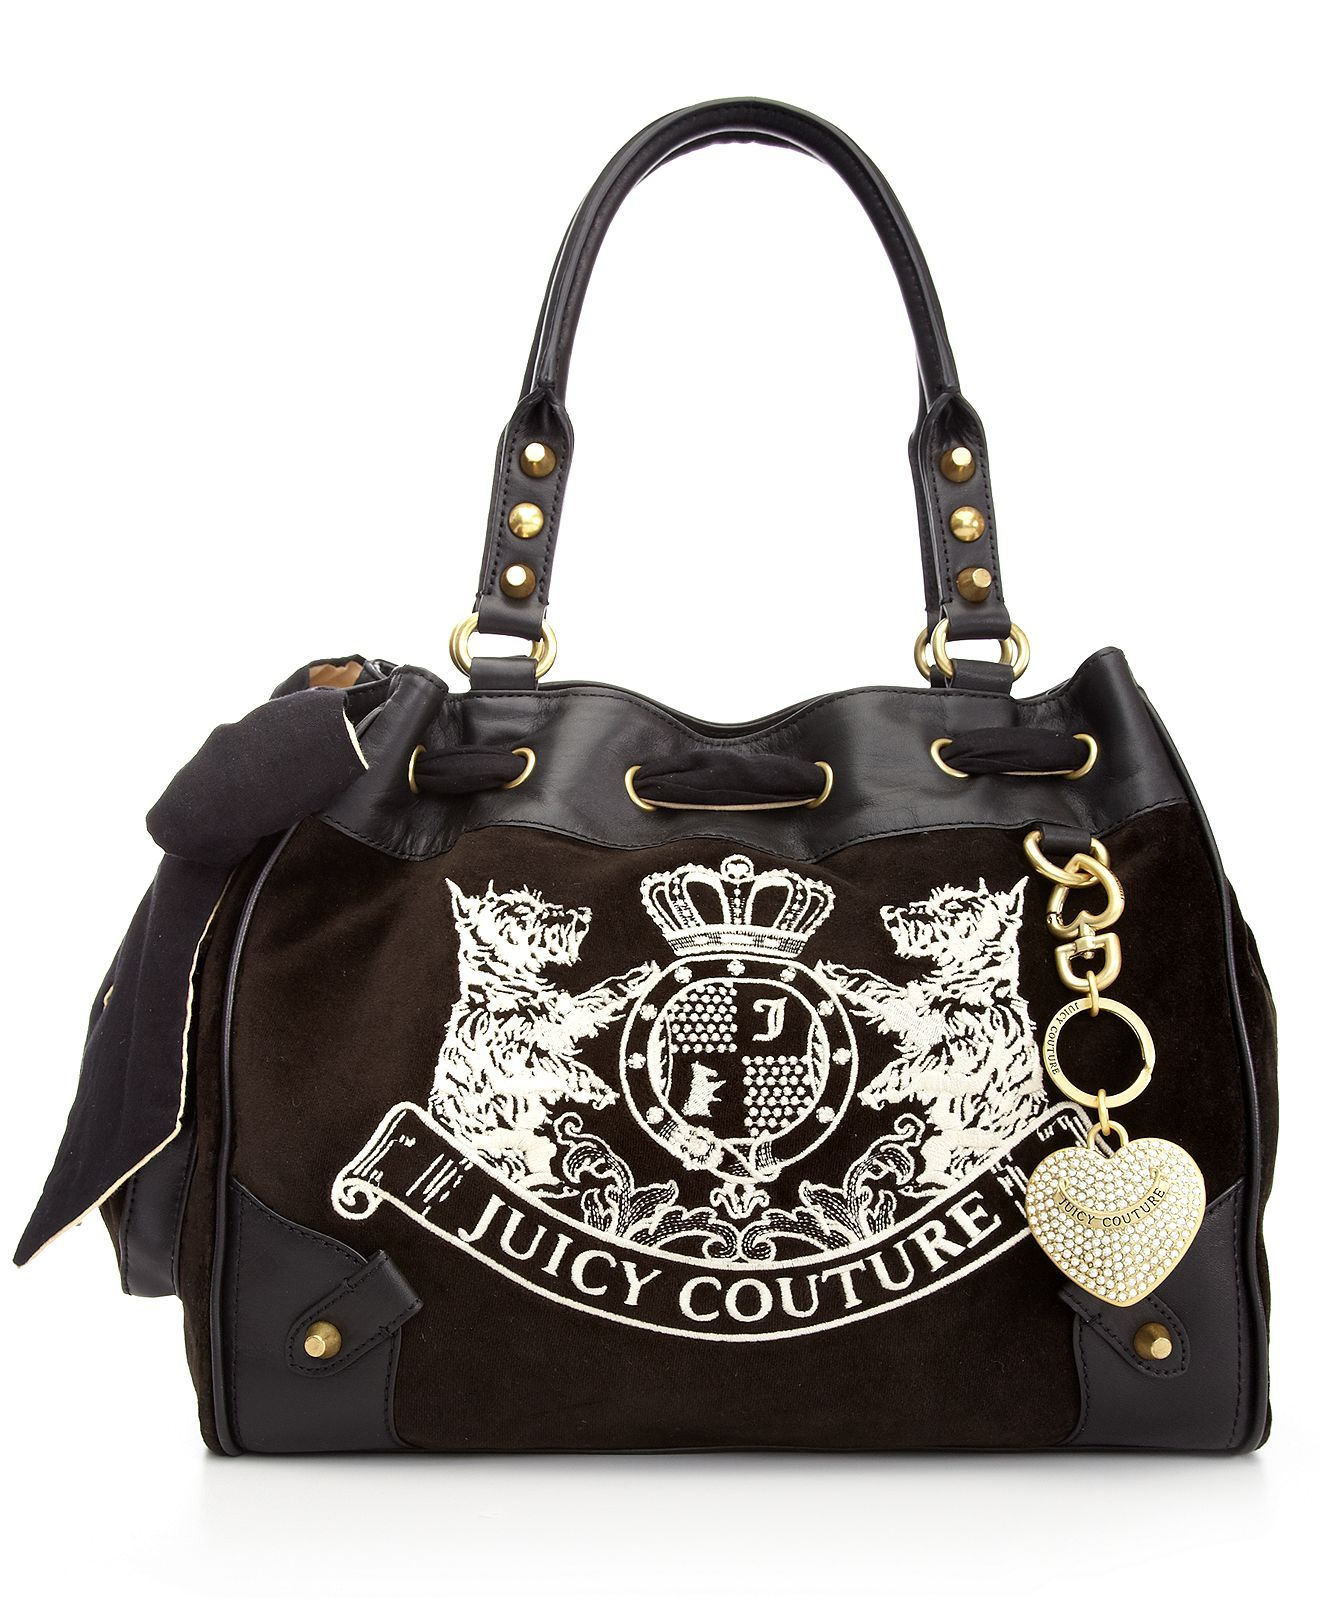 Juicy Couture - Scotty Embroidery Daydreamer Bag